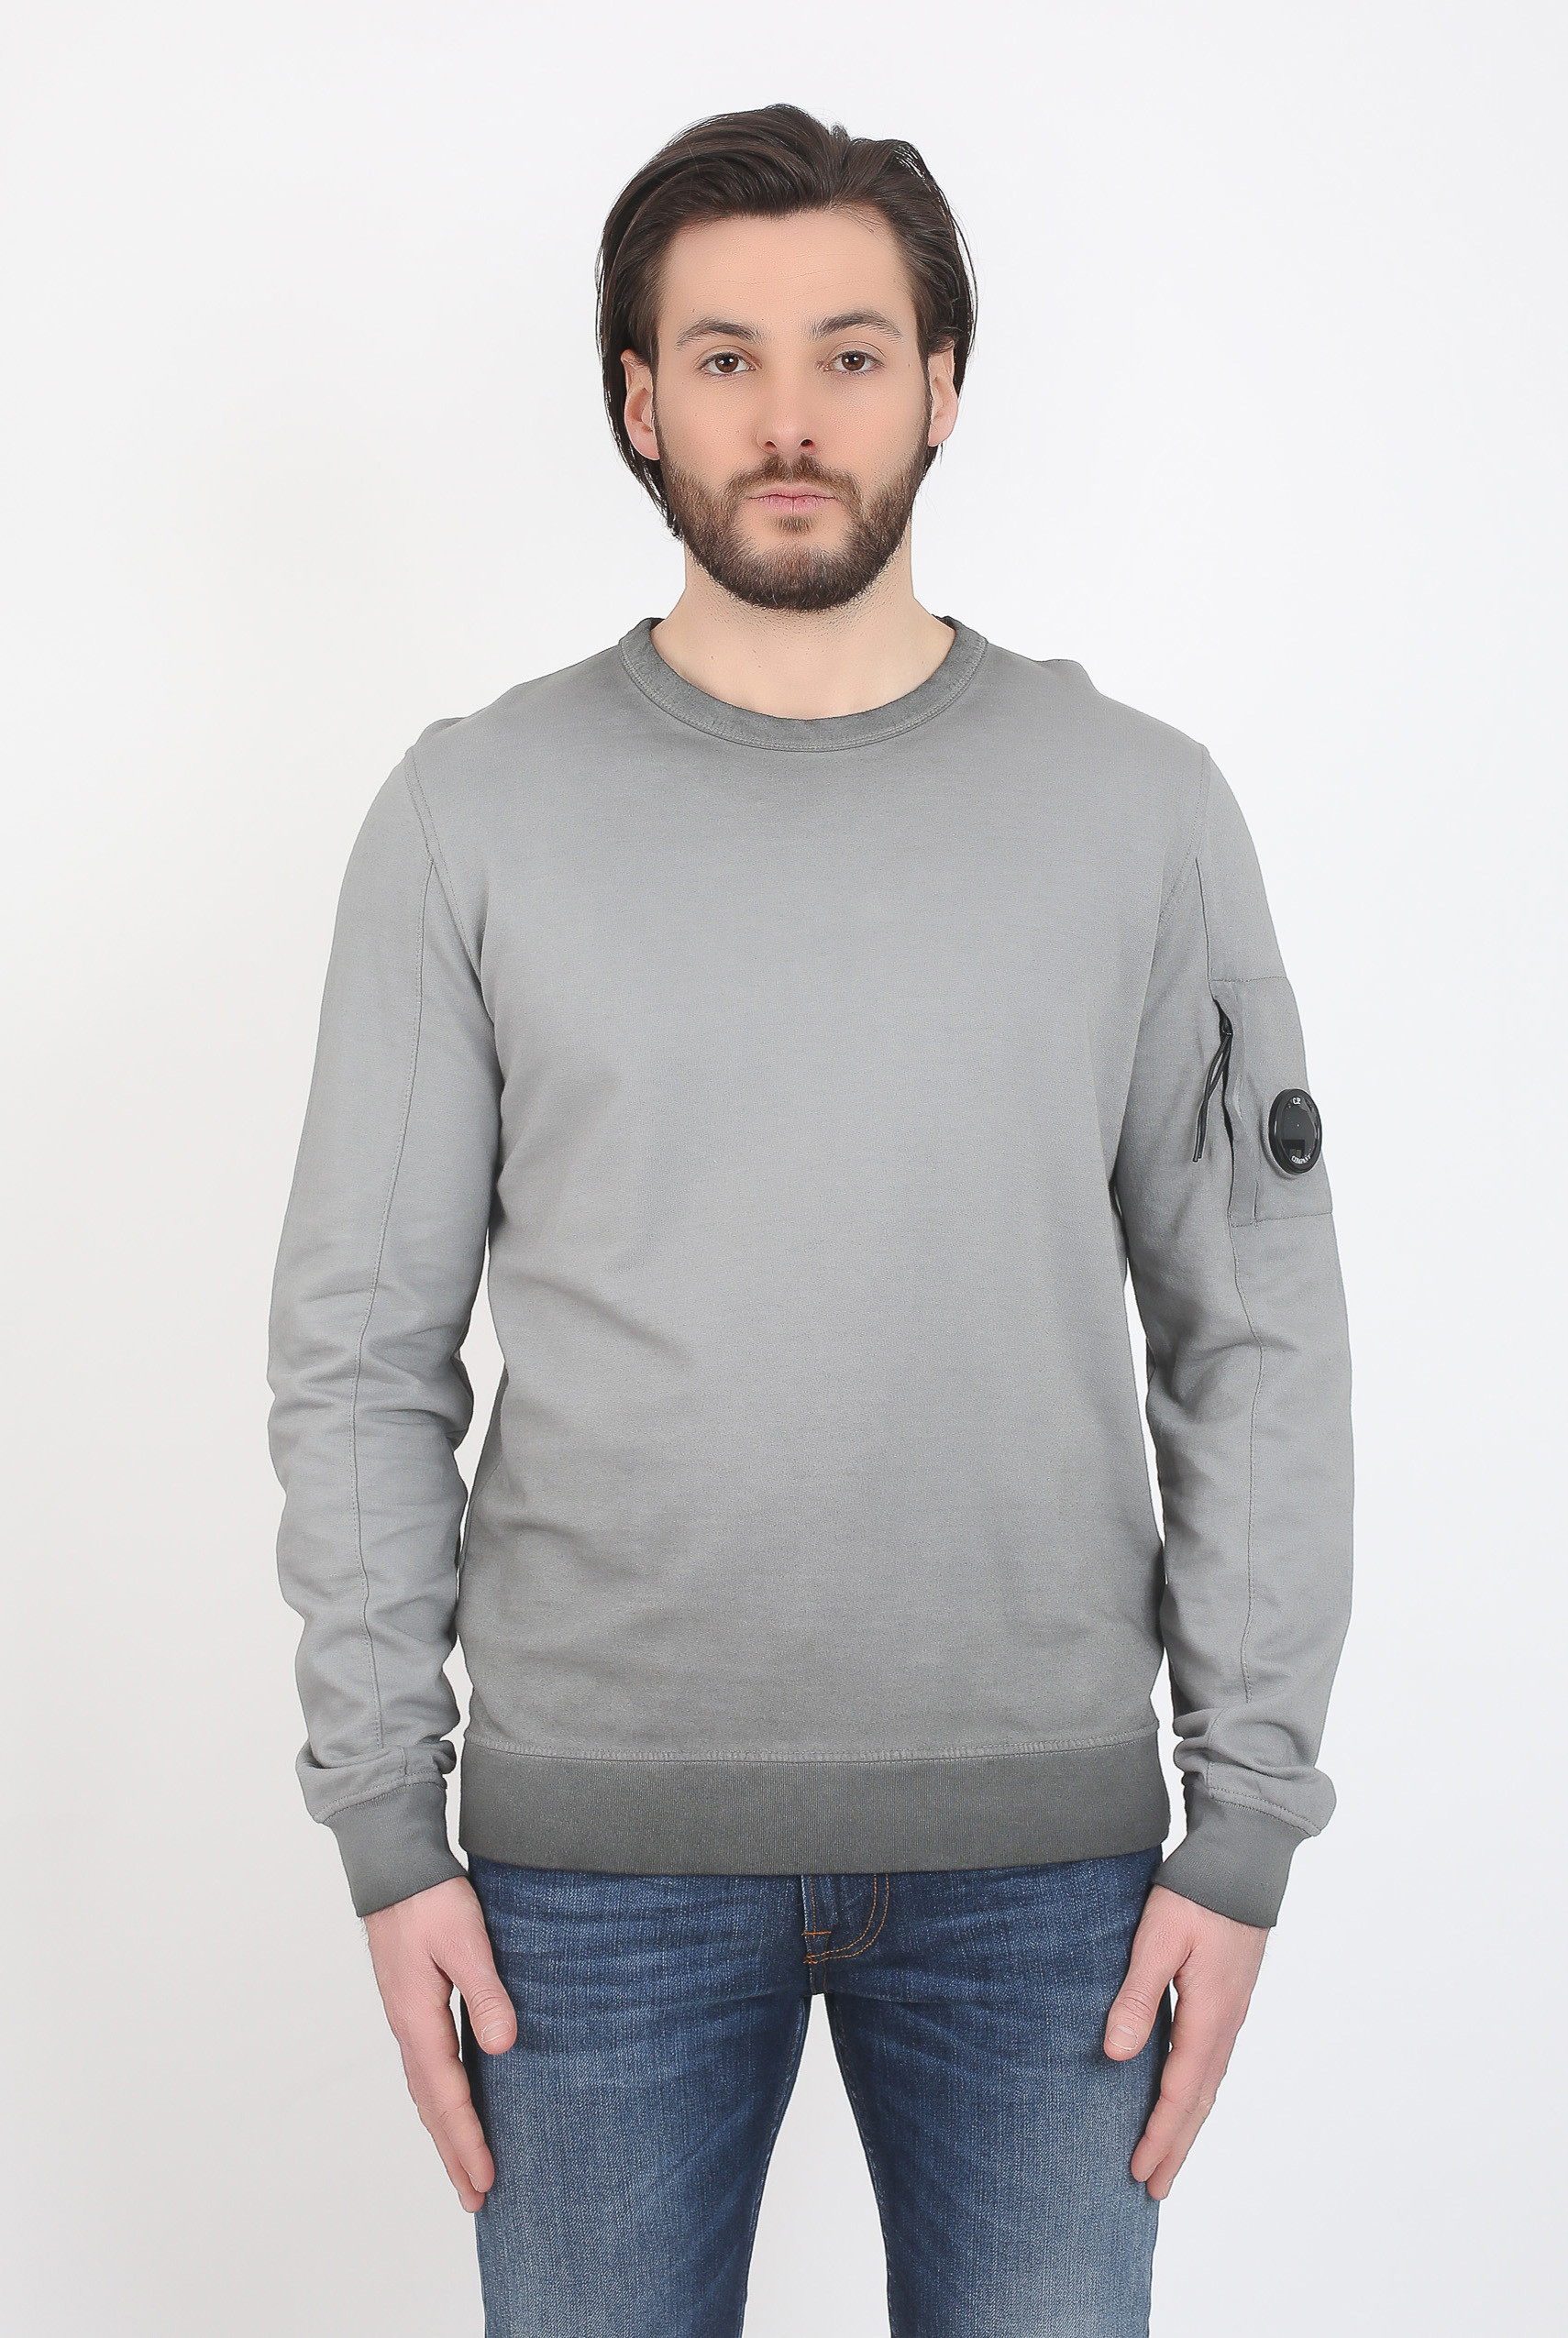 SWEAT SHIRT CP COMPANY GRIS SO55A 5219S-968